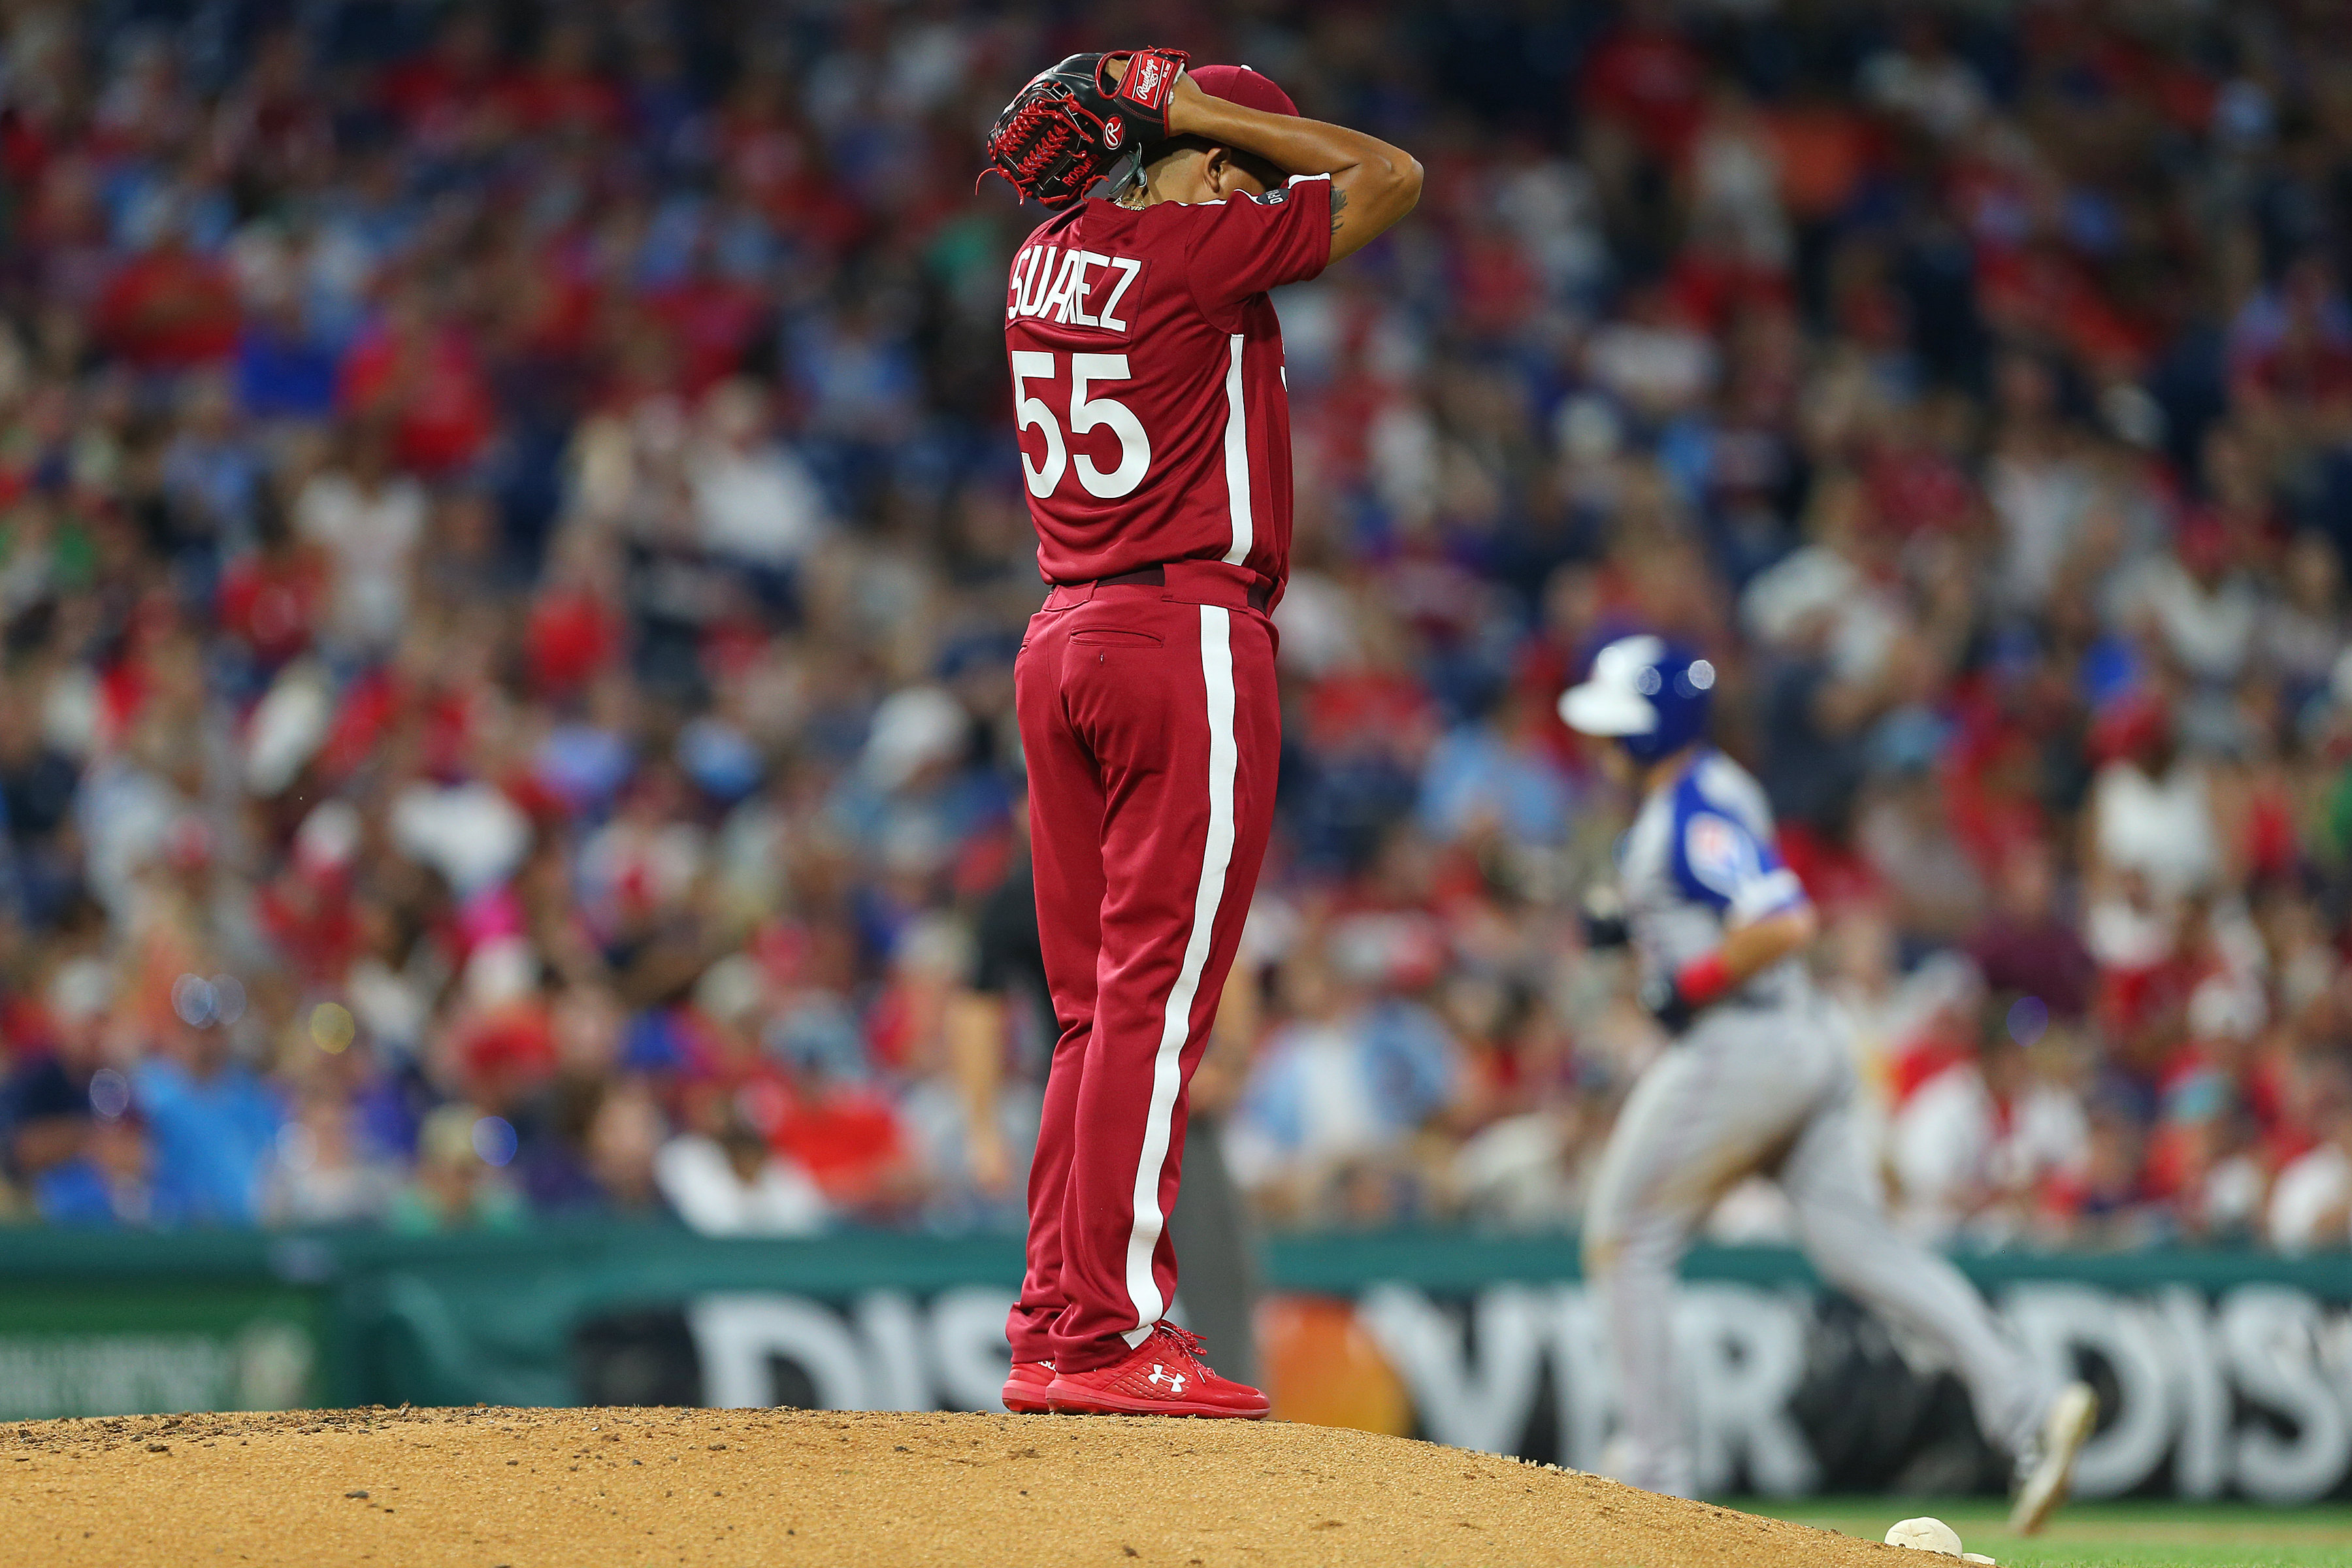 outlet store c3605 0e80c Harper, Phillies Hear Boos During 15-7 Loss To Braves – CBS ...